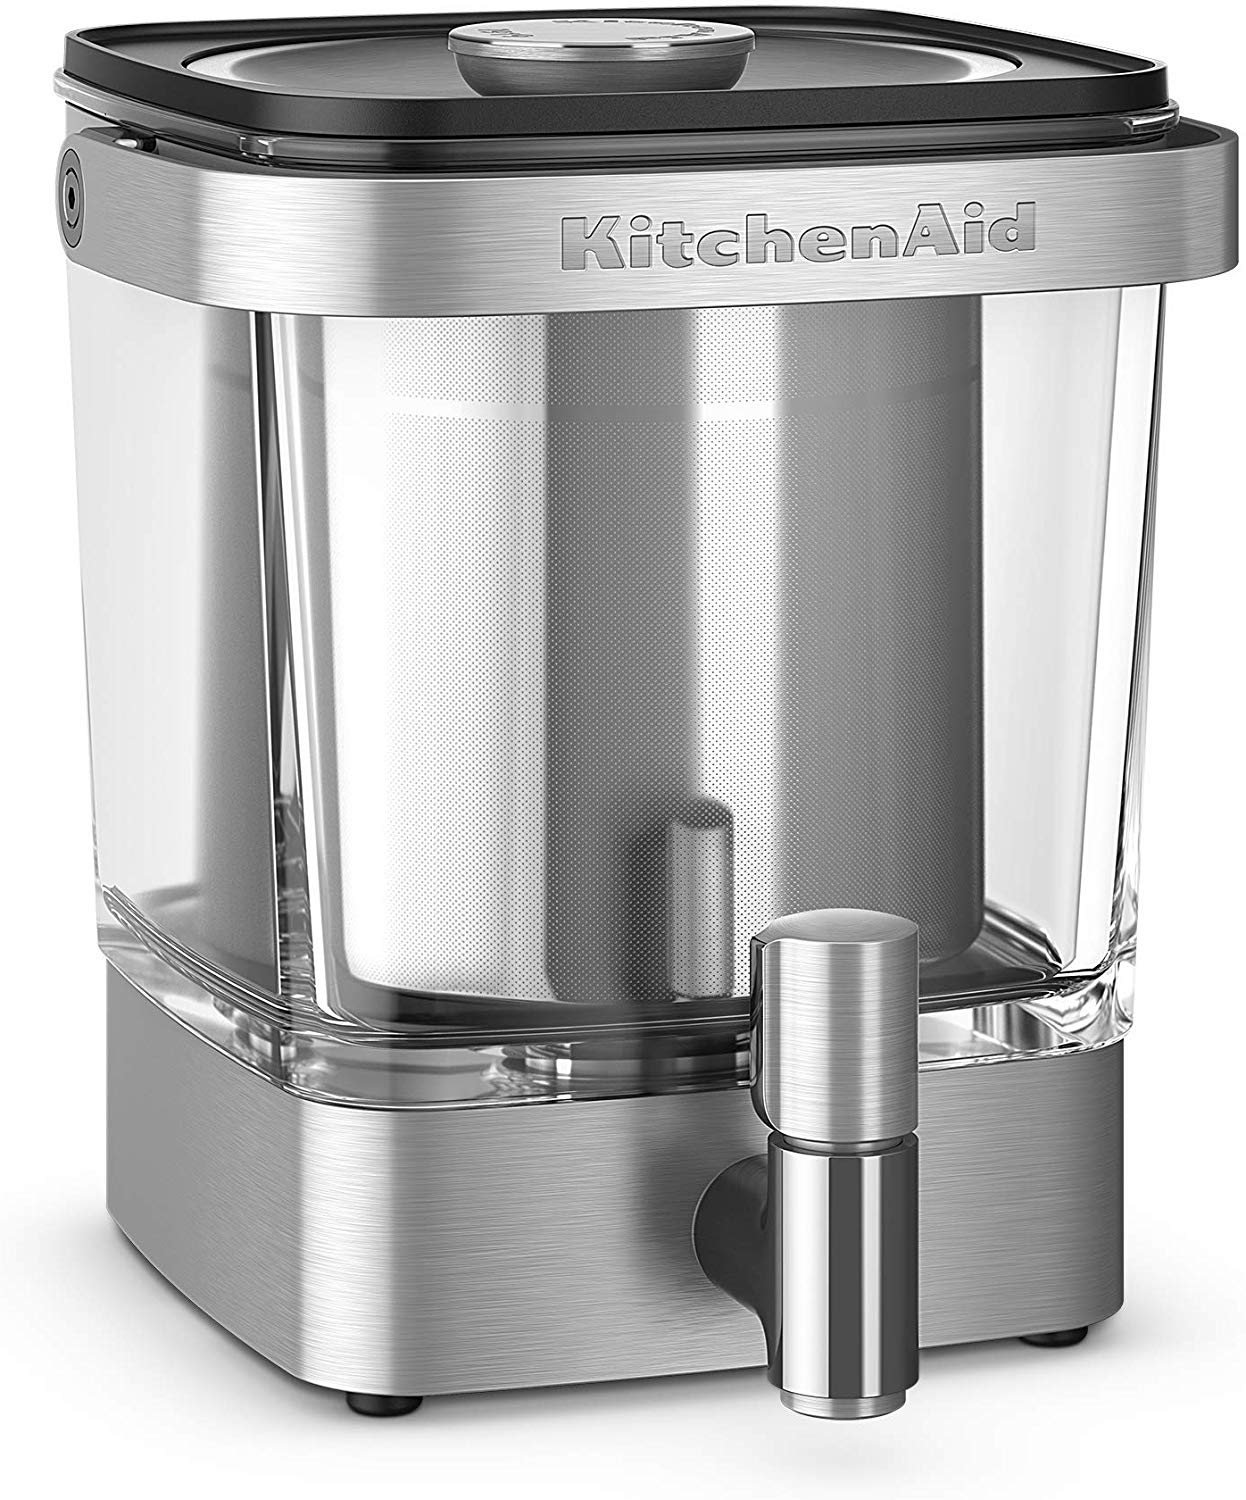 KitchenAid Cold Brew Coffee Maker only $79.99! ($50 off)